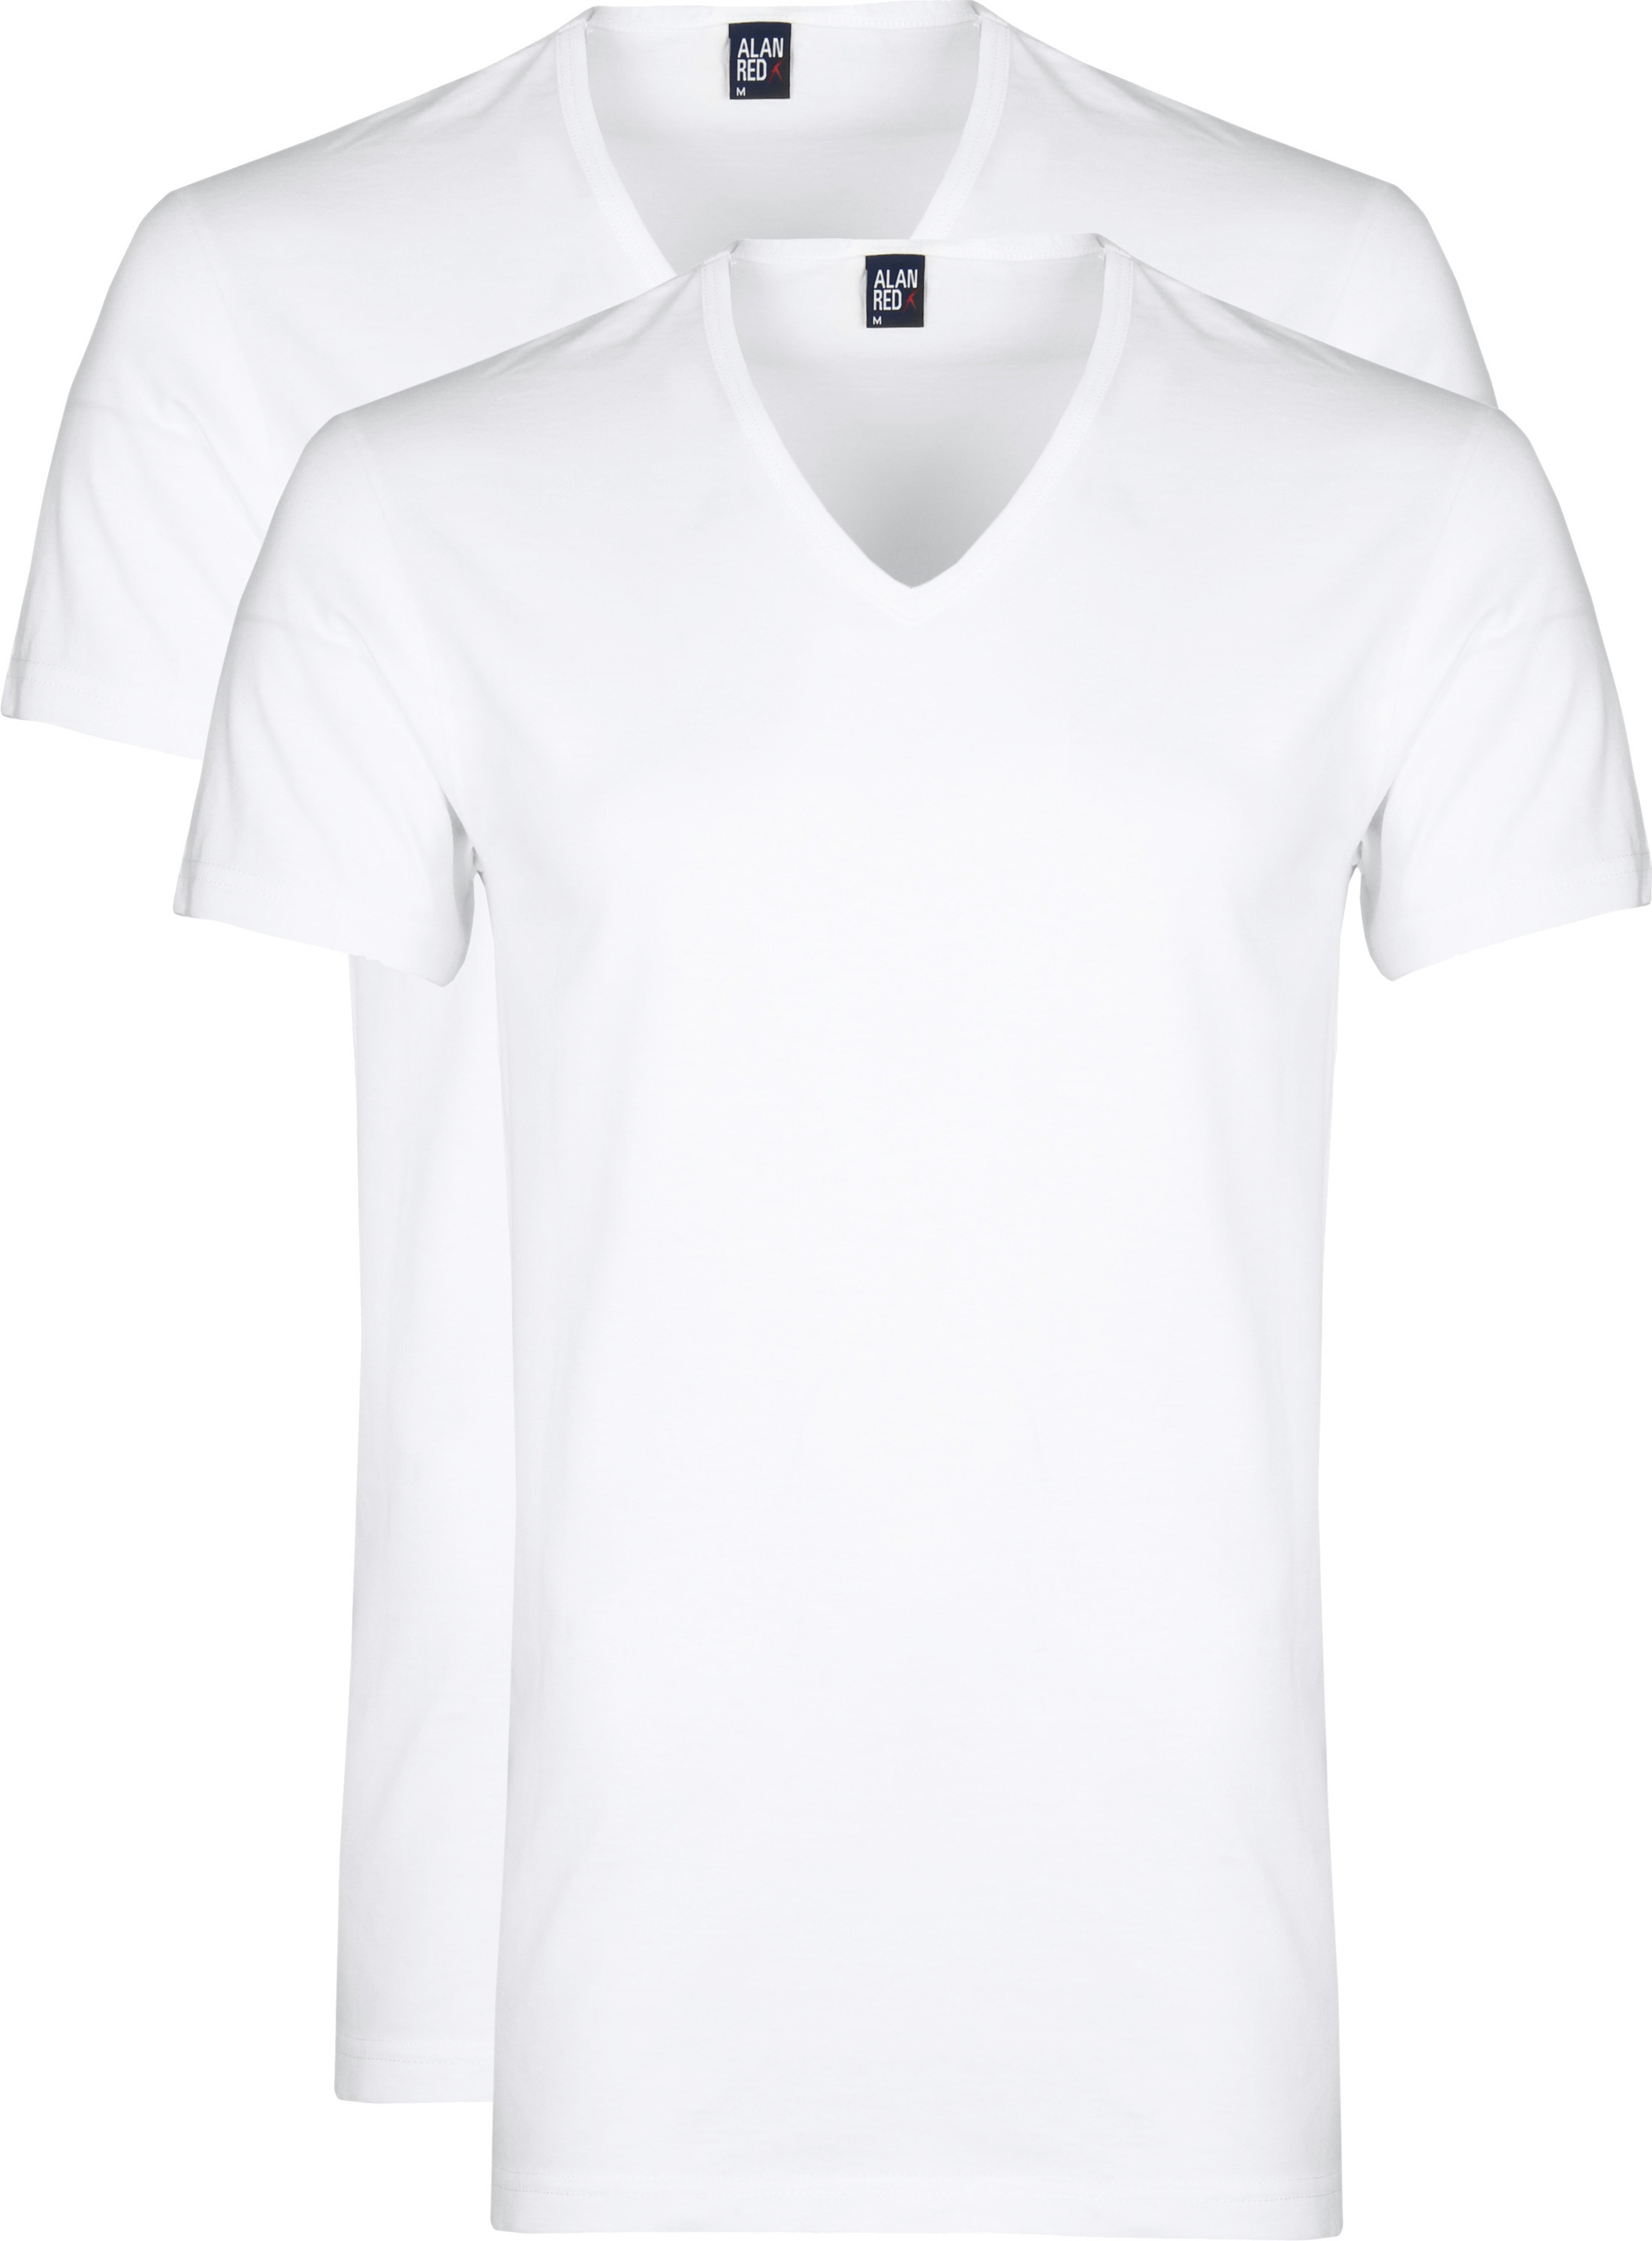 Alan Red Dean V-Neck T-shirt White 2-Pack foto 0